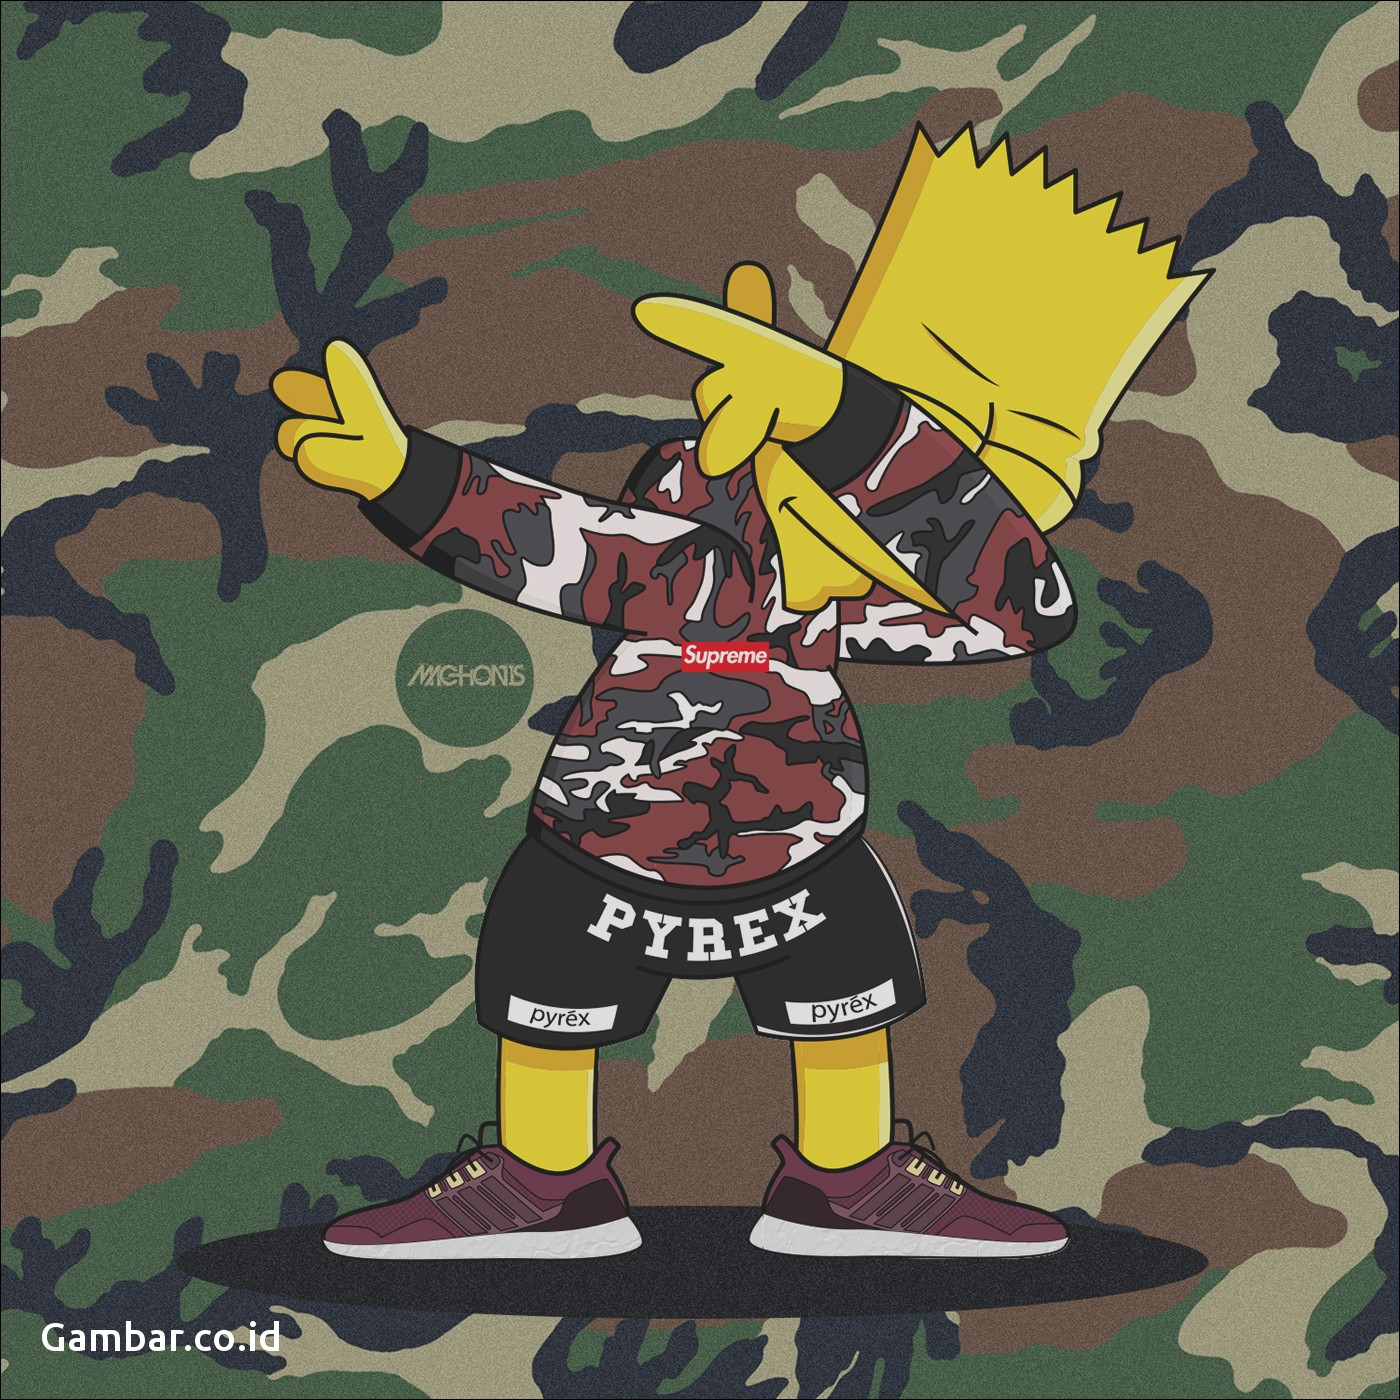 Simpson Supreme Wallpaper Group (34+), HD Wallpapers in